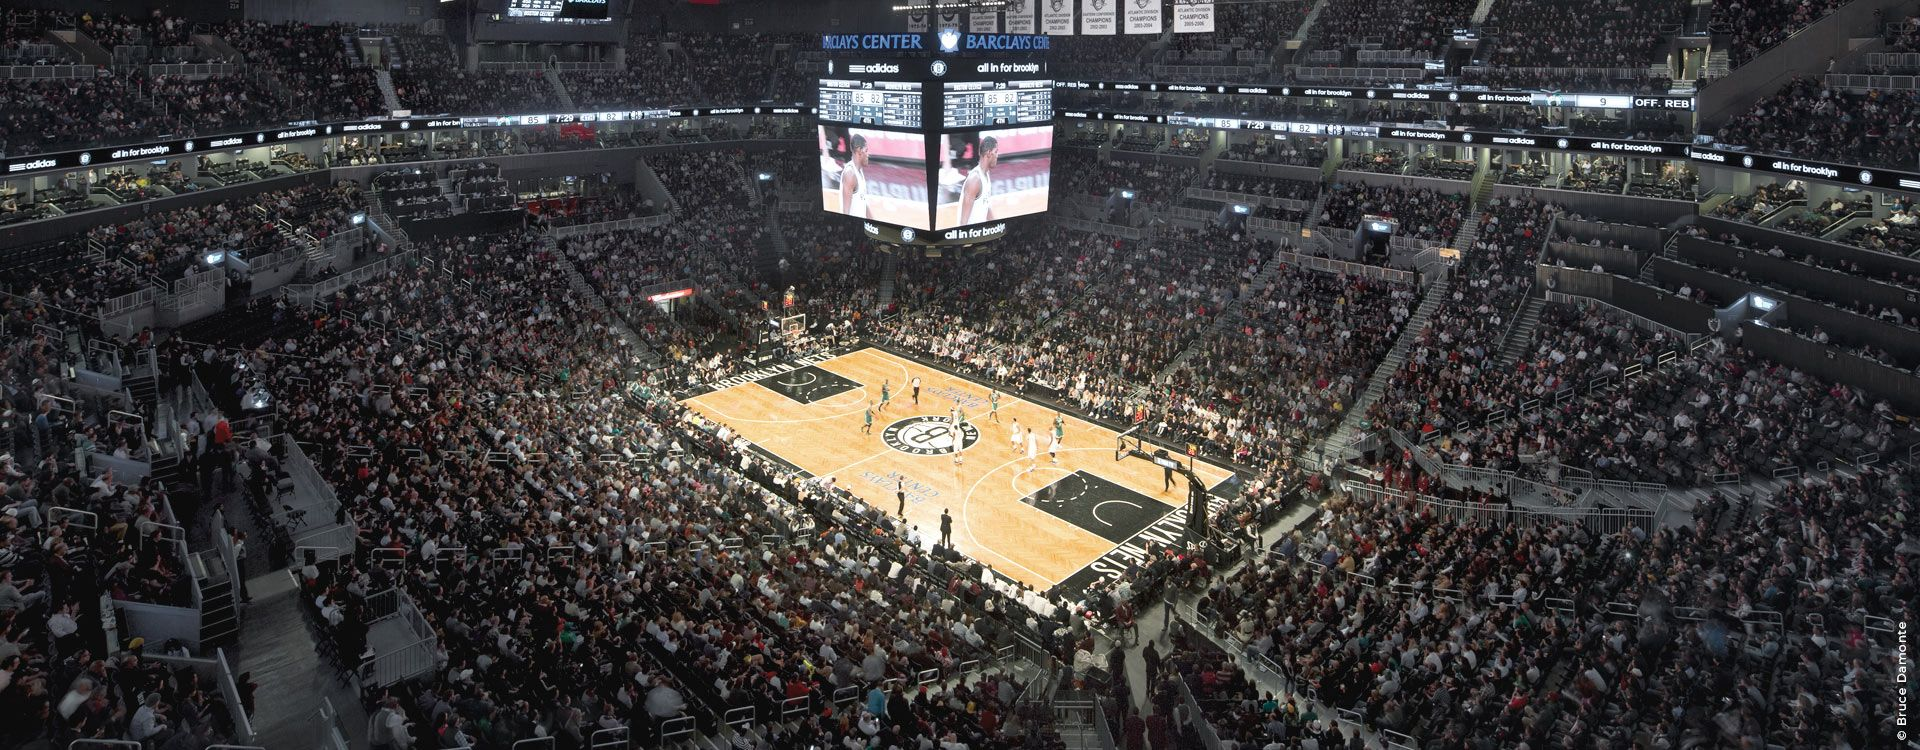 bnr-Barclays-Center-Property-and-Buildings-Sports-and-Stadia